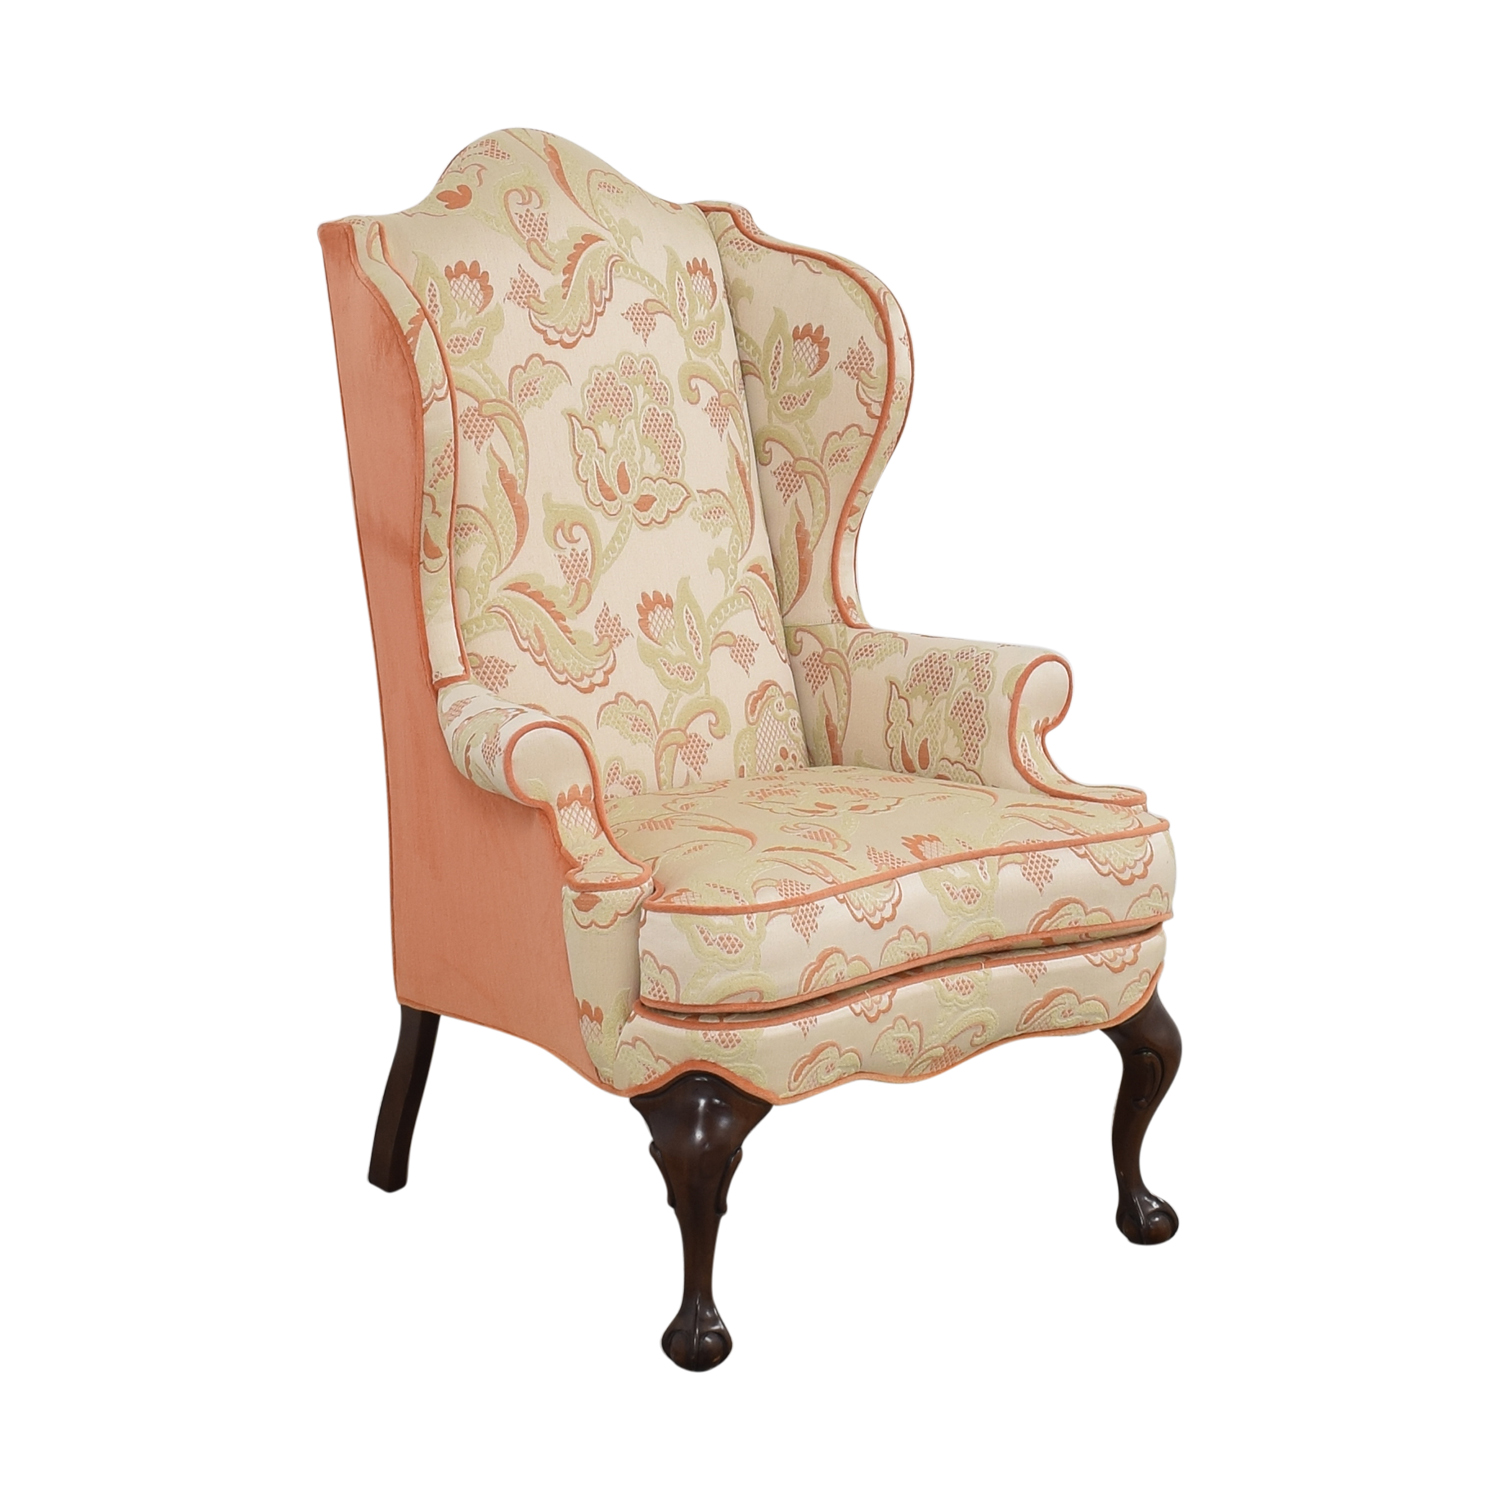 Macy's Macy's Upholstered Wingback Chair ct